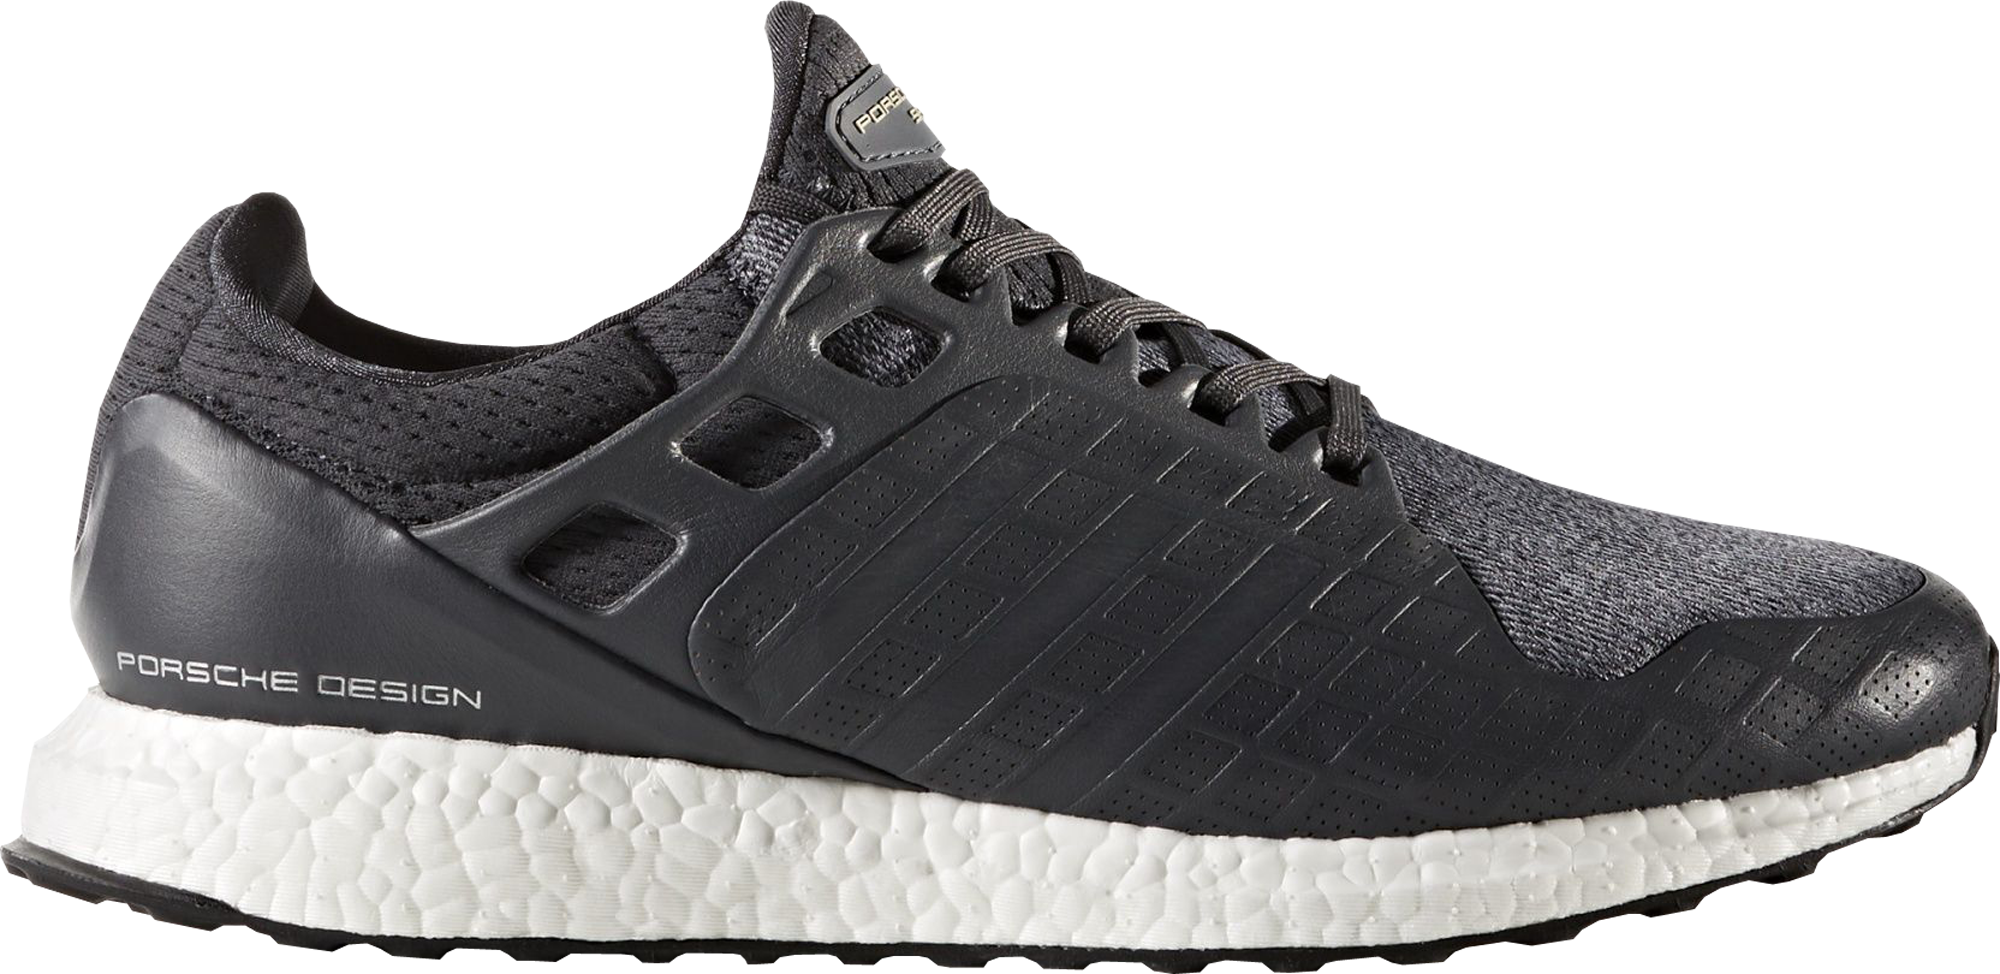 size 40 innovative design top quality wholesale adidas ultra boost trainers 8b90c 3a3ae